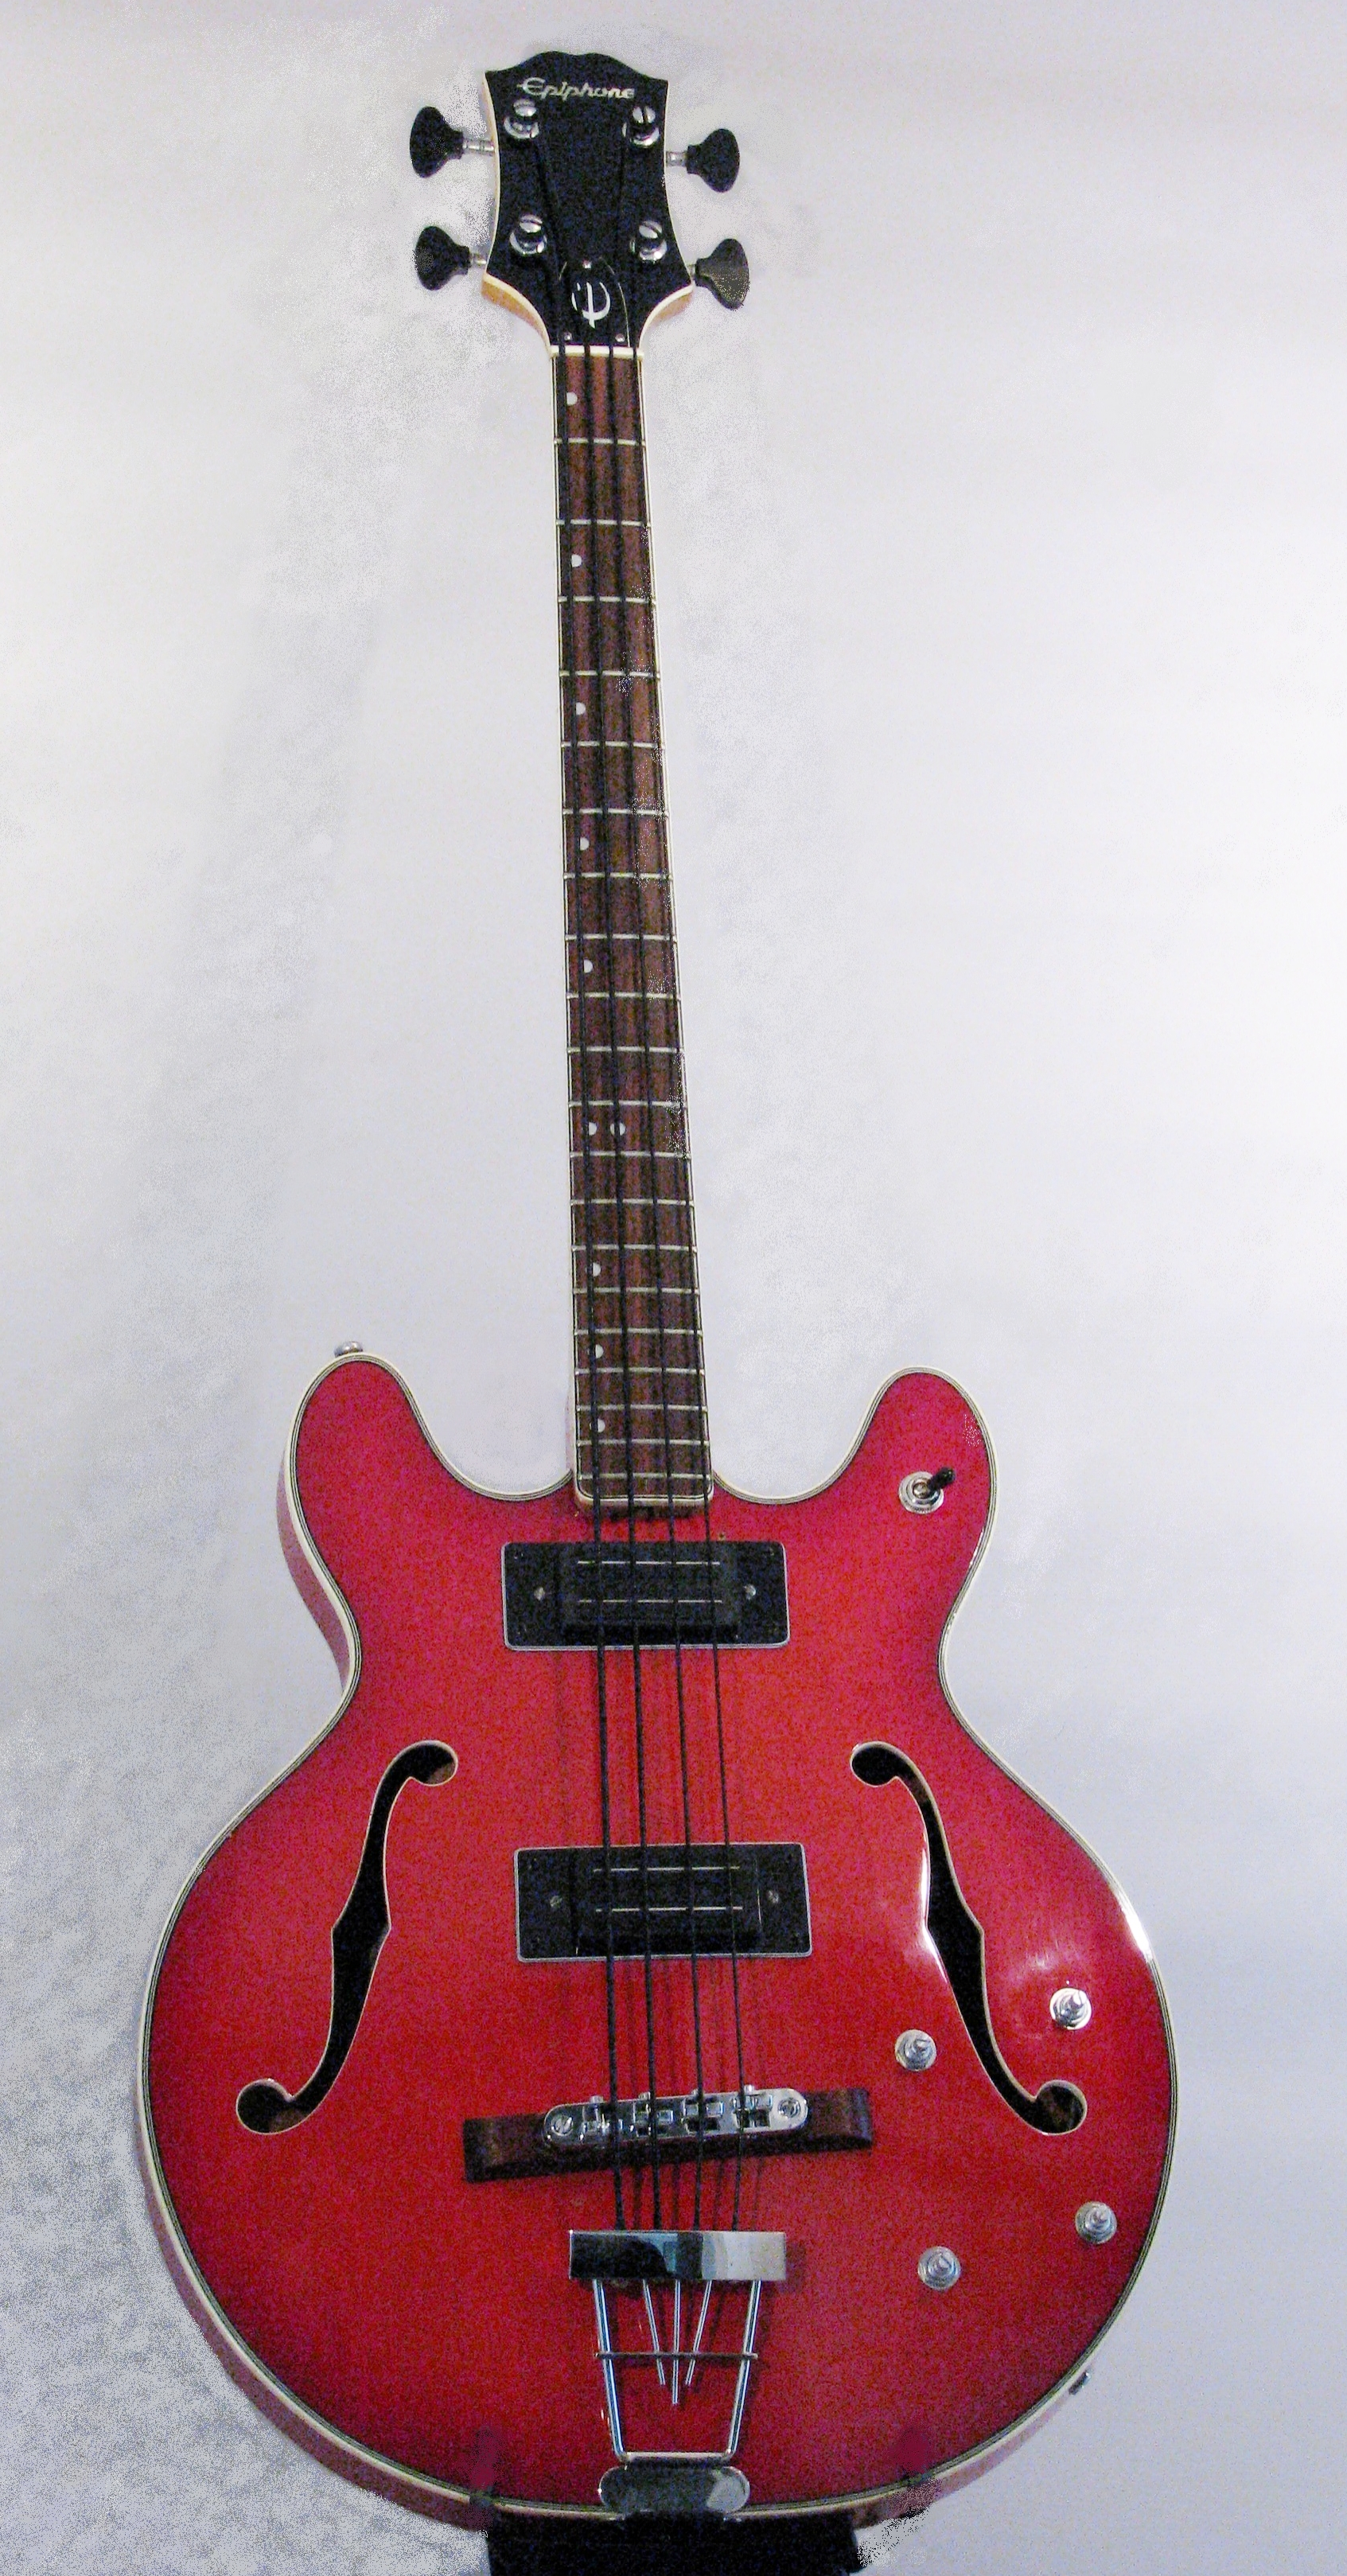 Restored 70's Epiphone Bass